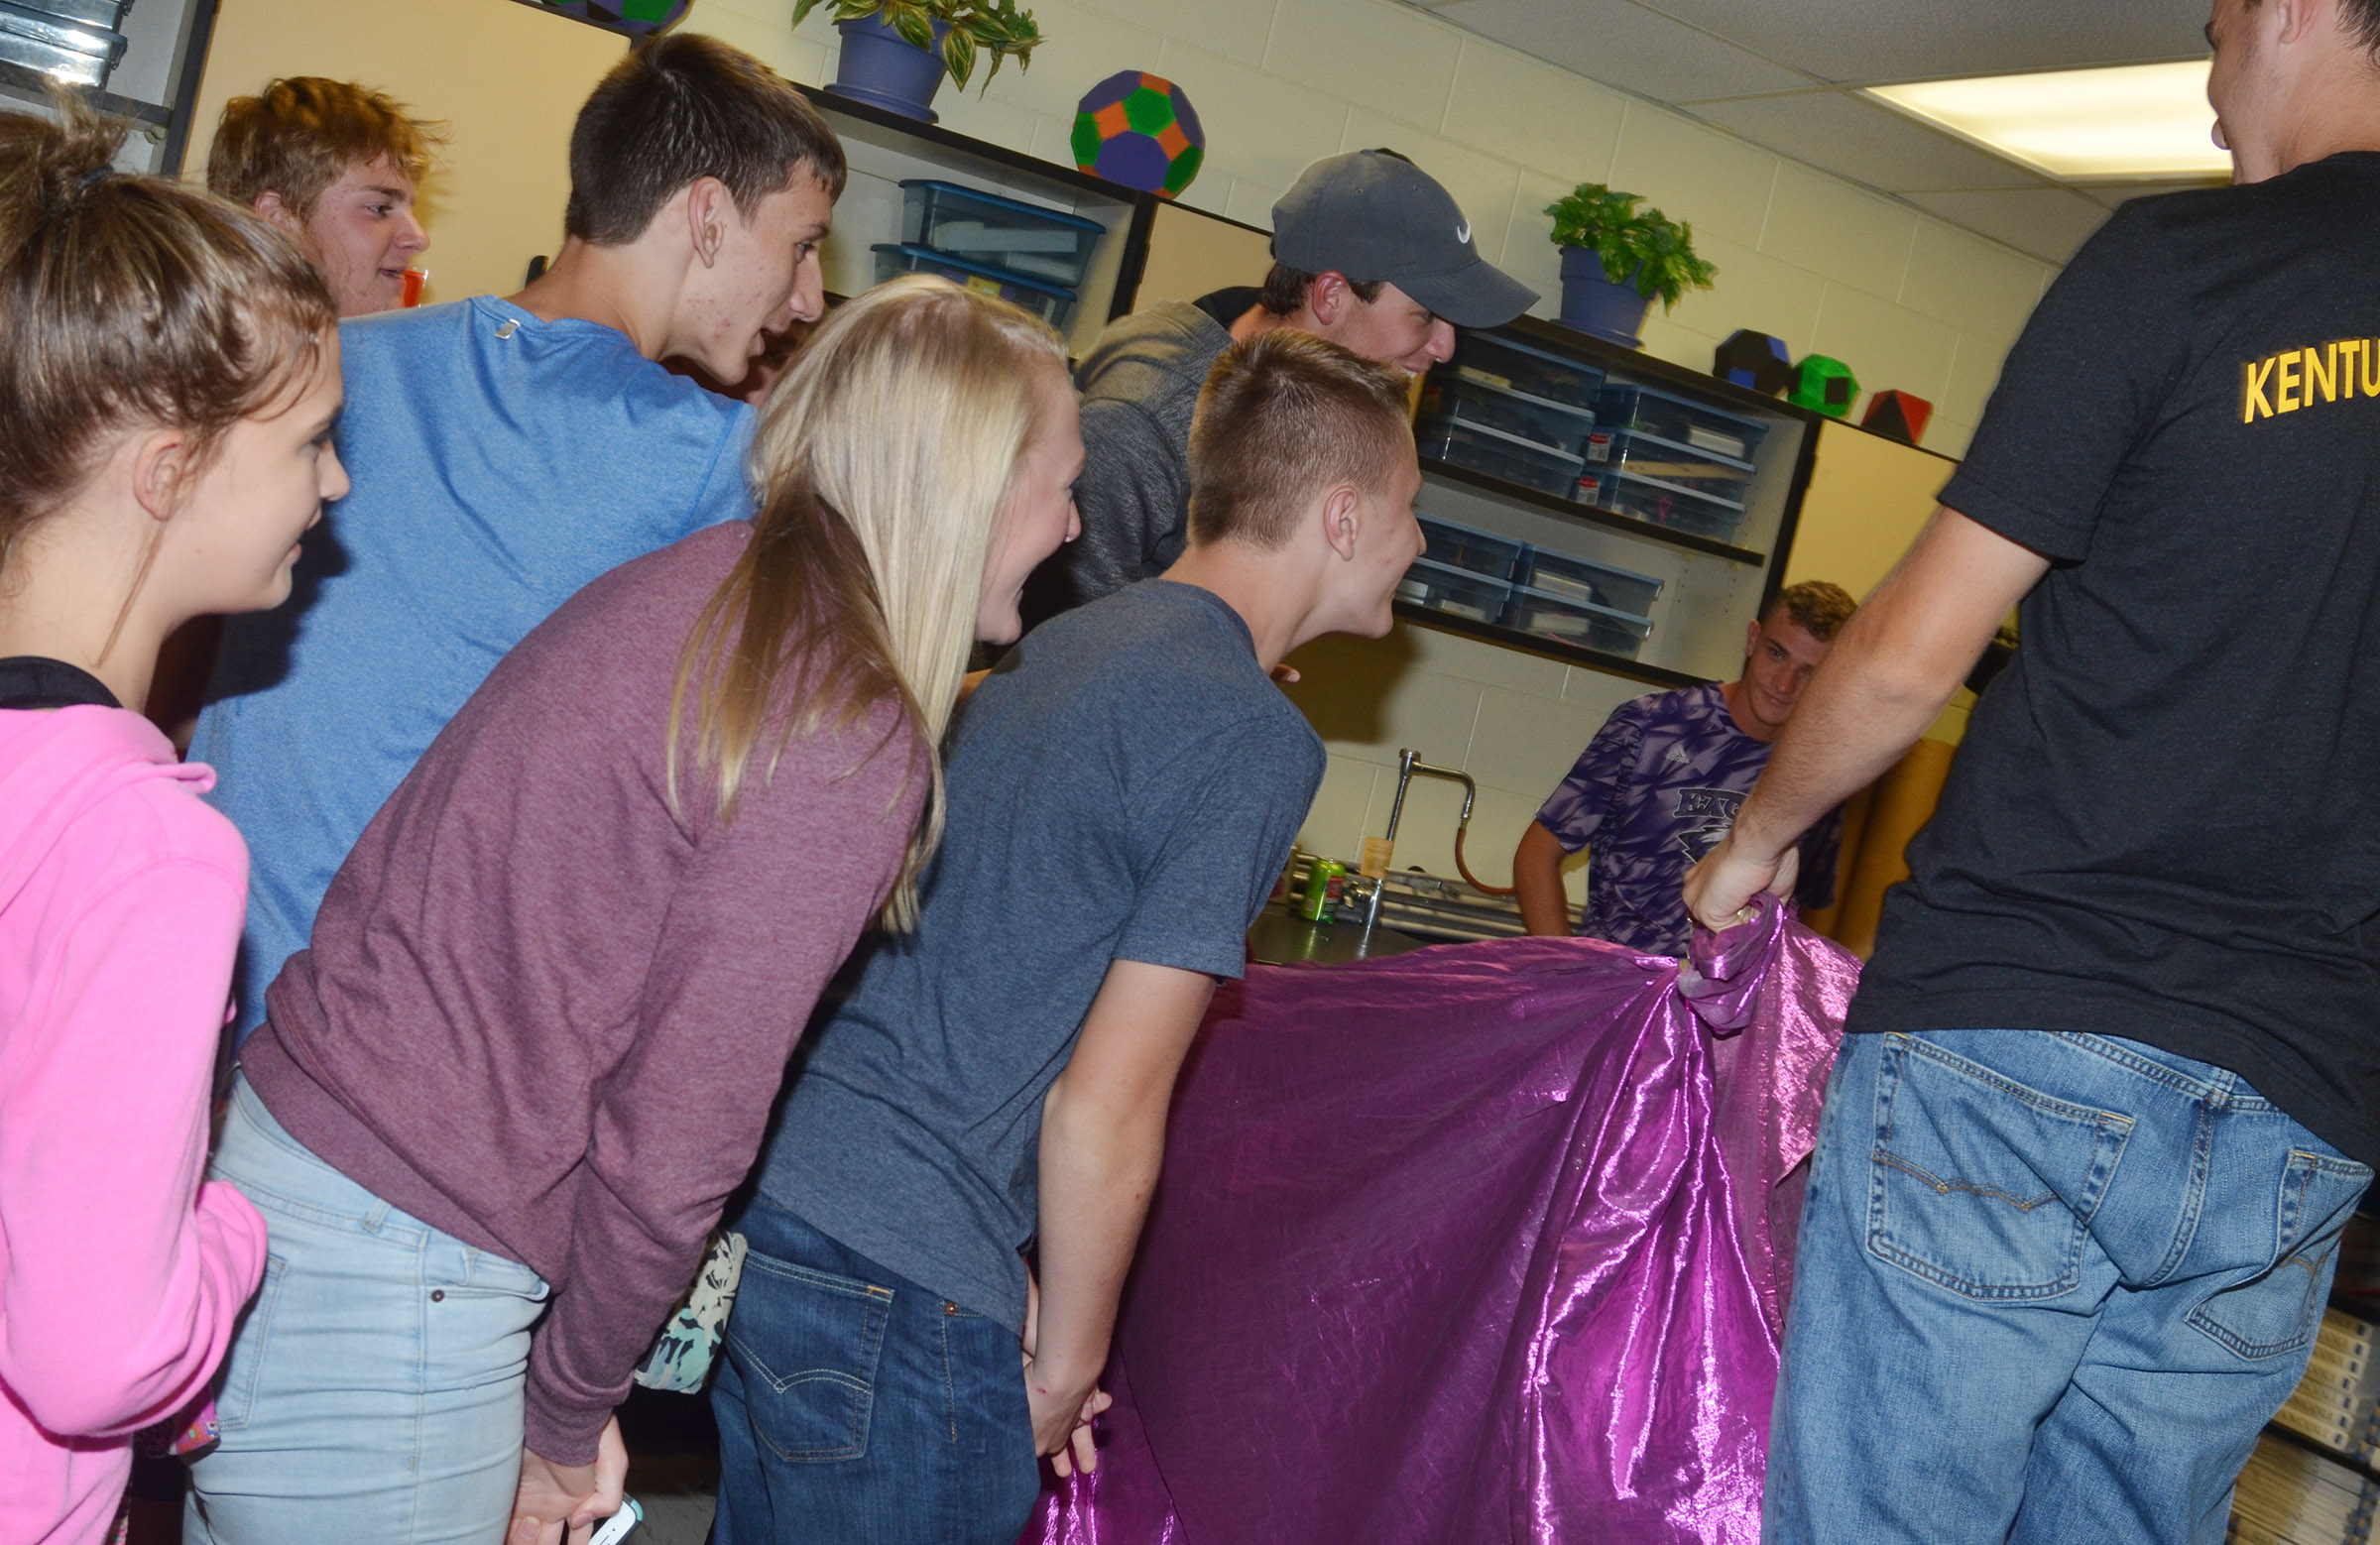 CHS students gather together to play the behind the curtain game.